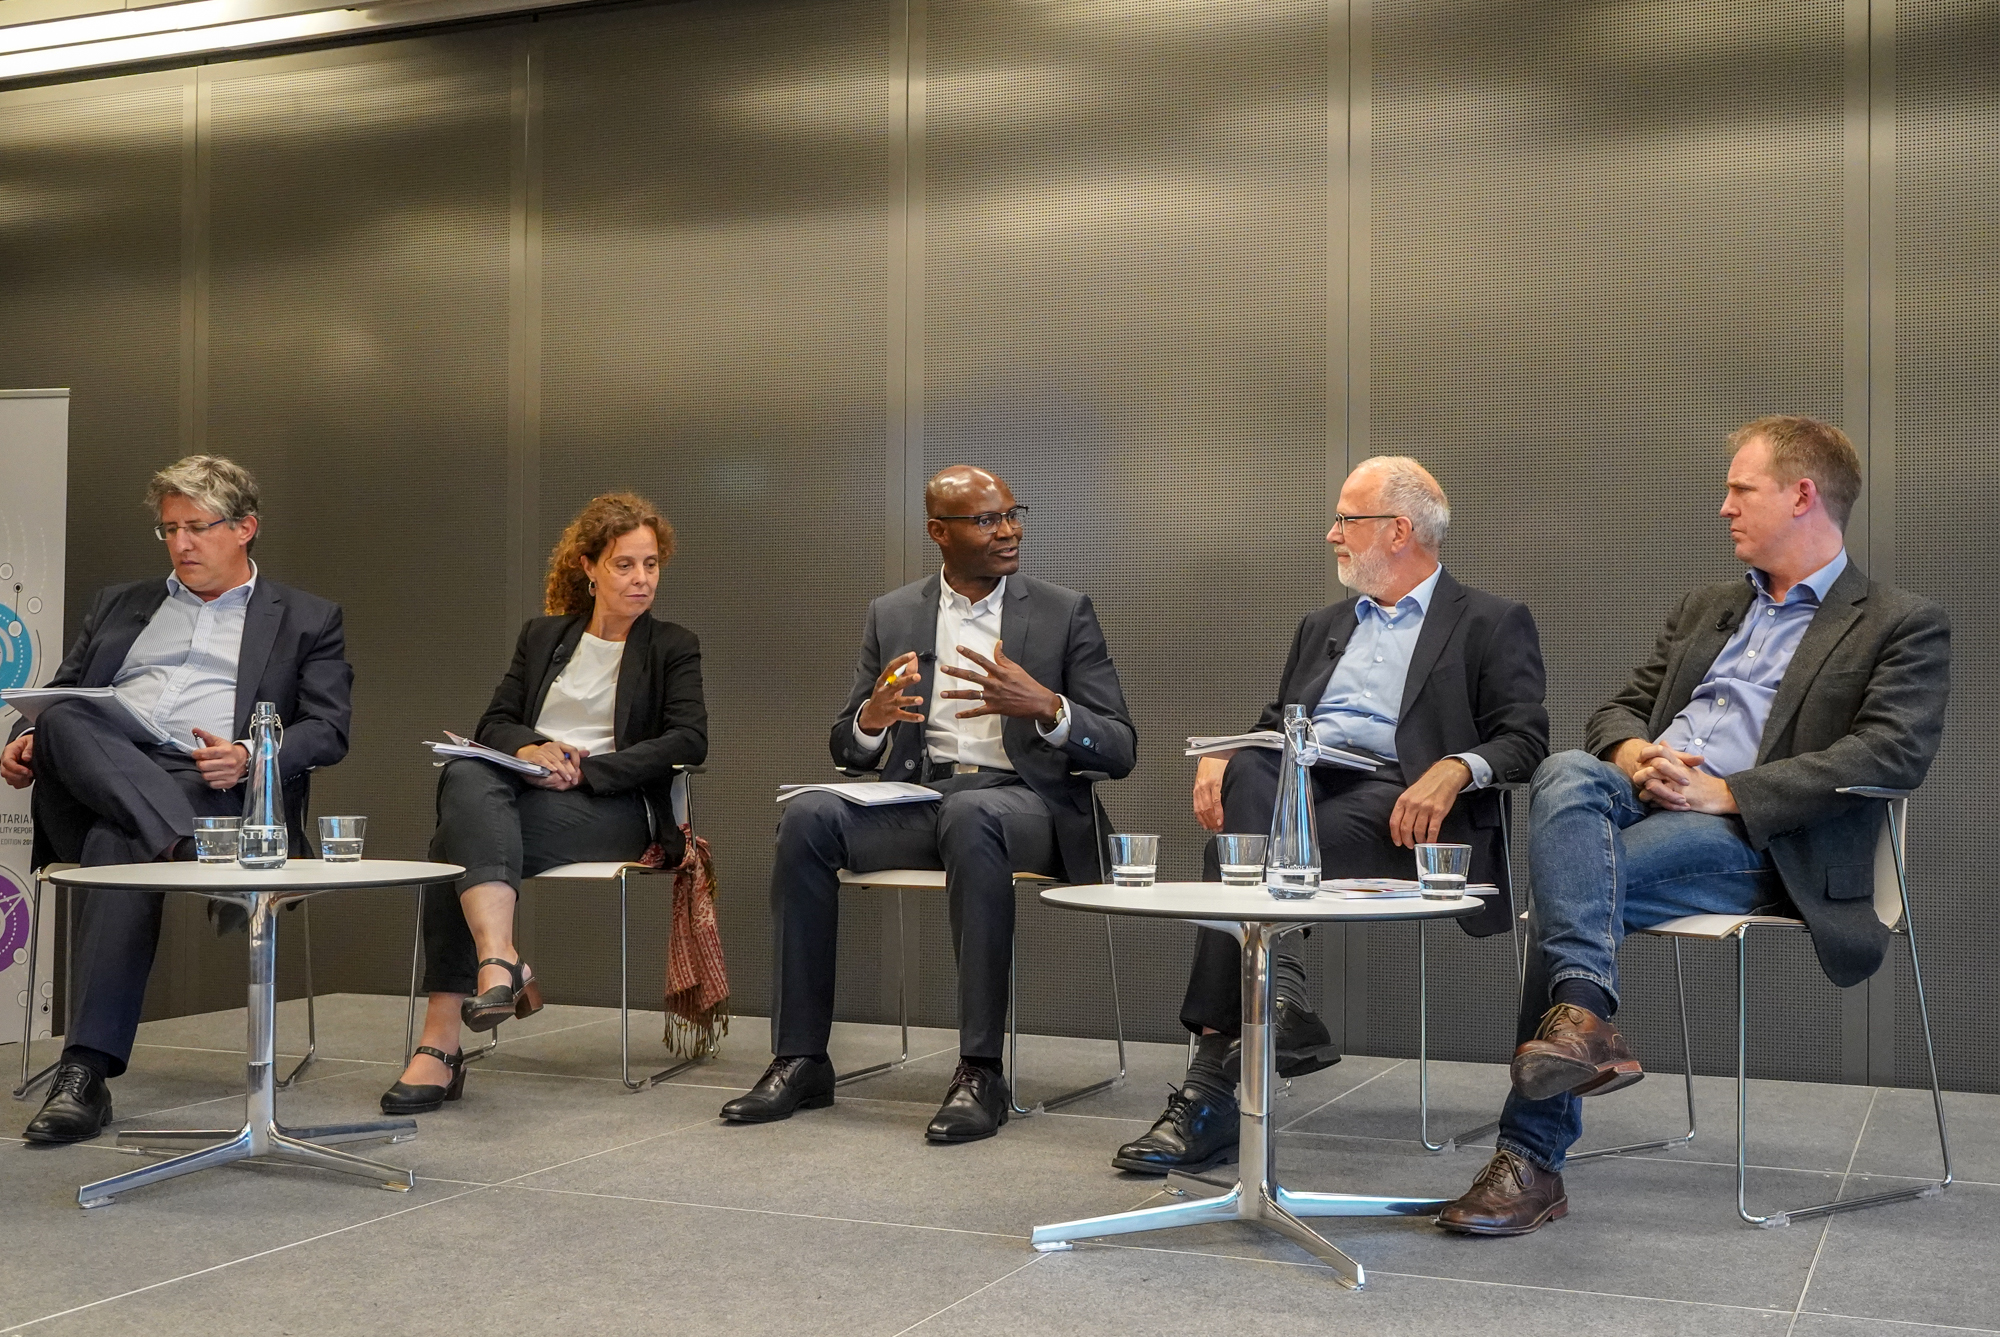 Panel discussion at 2018 HAR launch event